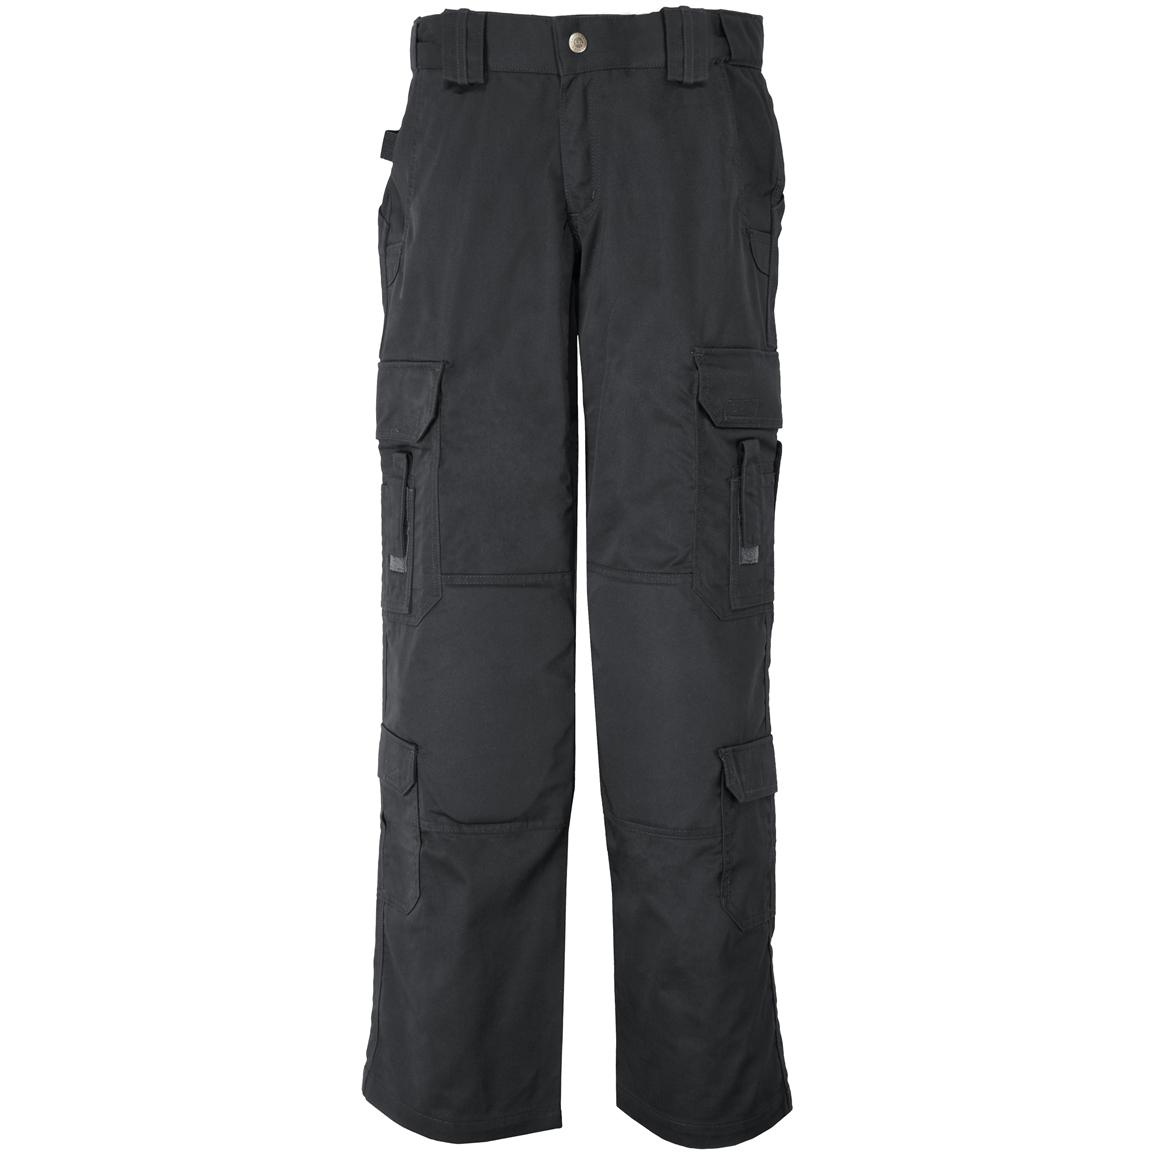 Women's 5.11 Tactical® EMS Pants, Black